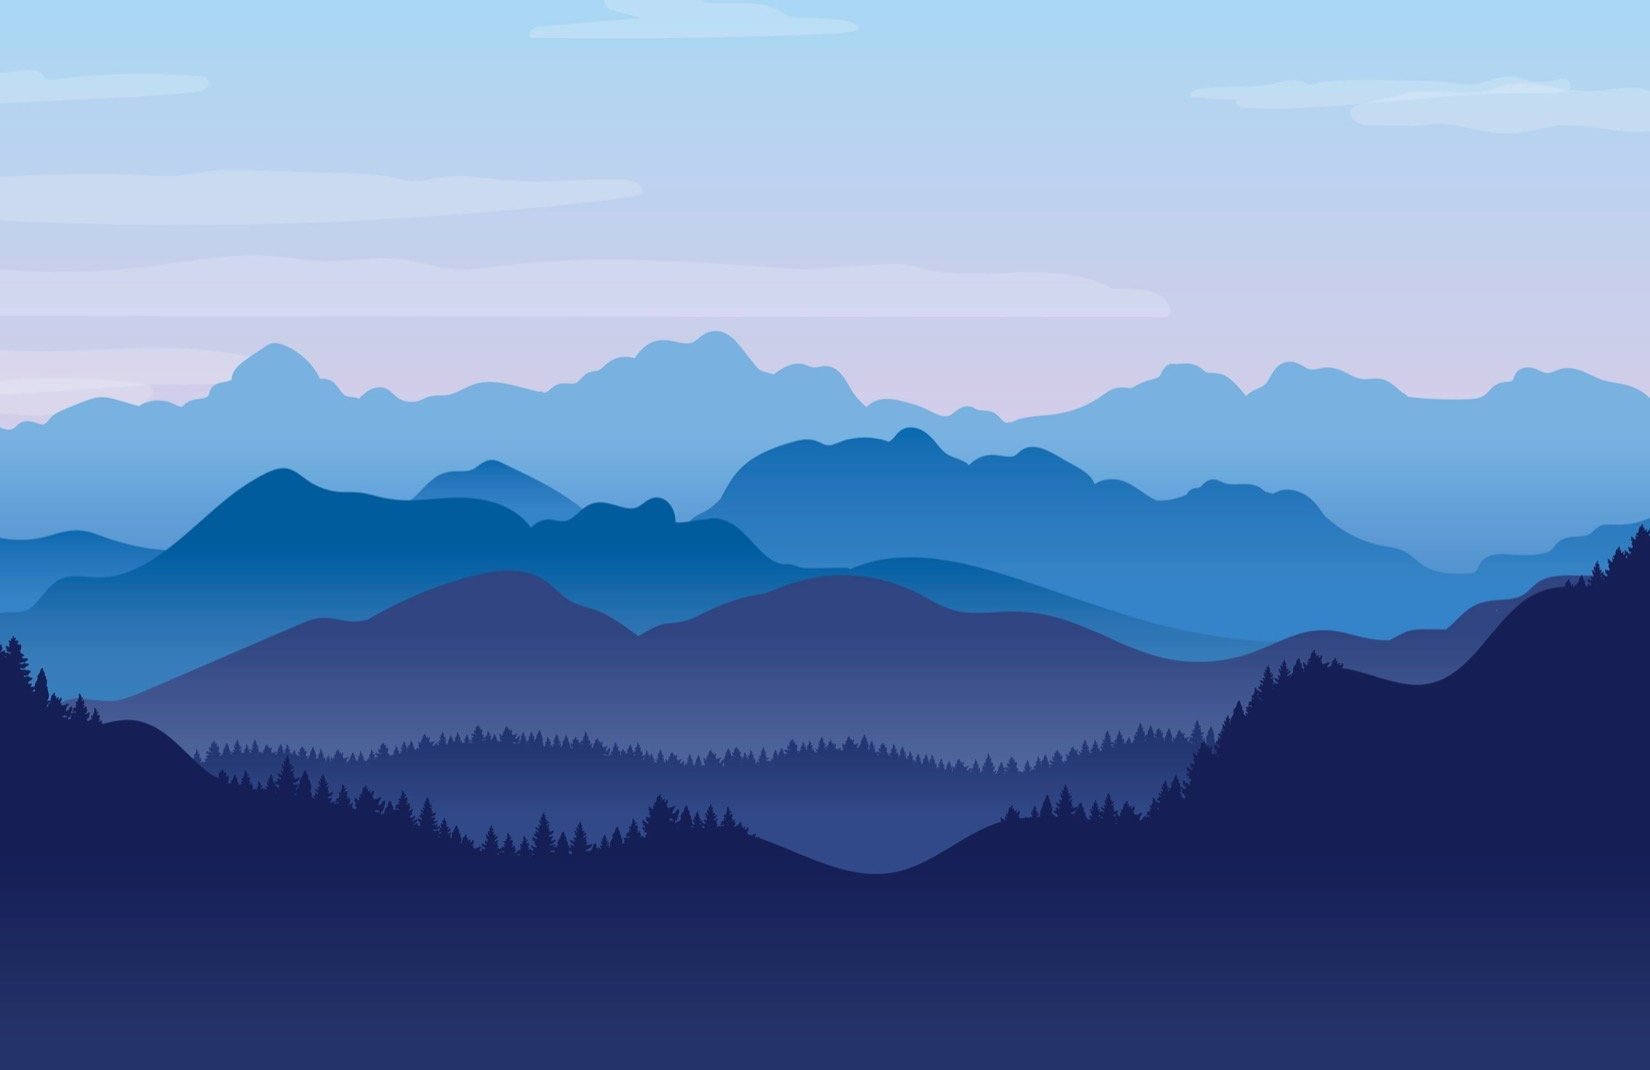 Blue Illustrated Landscape Mountains Wallpaper Mural   Mountain 1650x1070